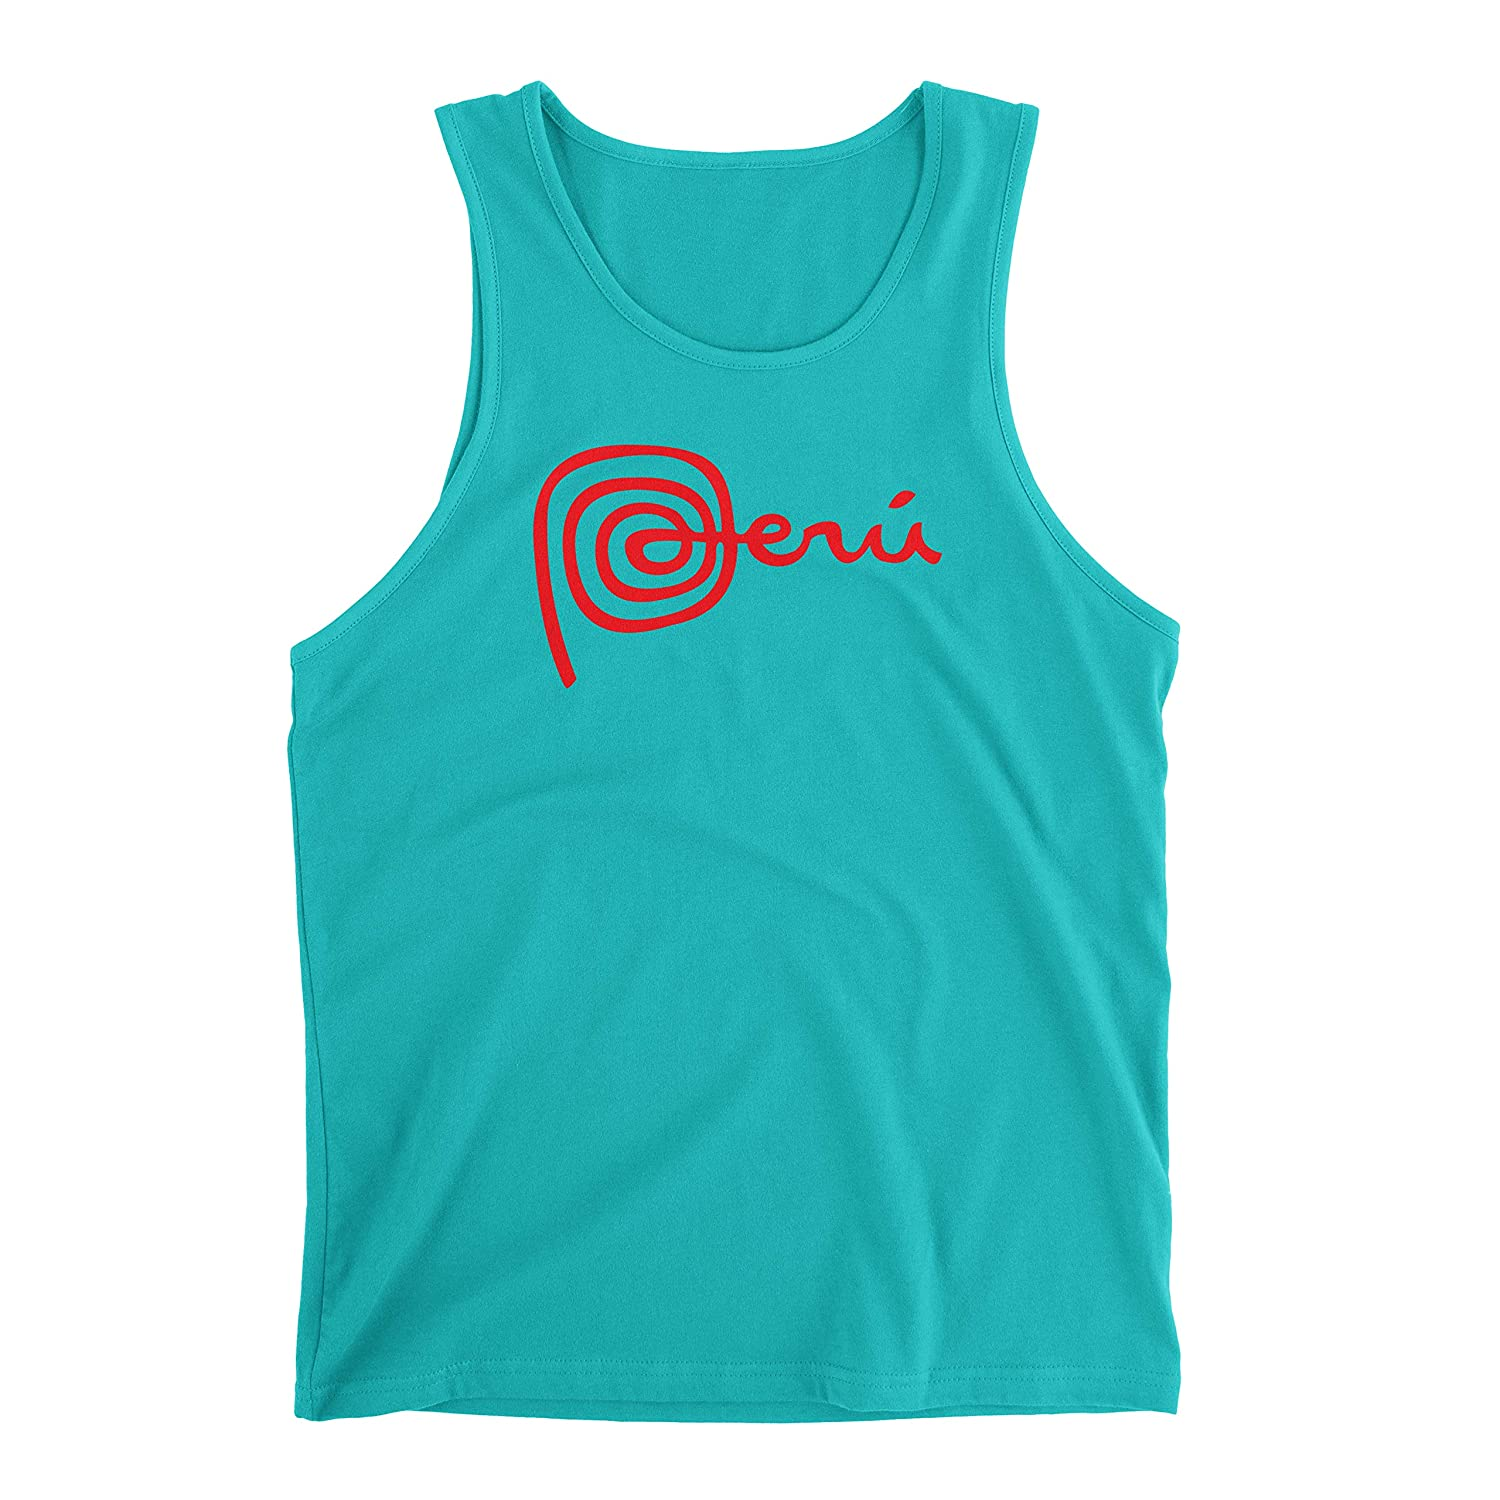 Hot4TShirts Marca Peru Tank Top for Men Sleeveless Crew Neck Design